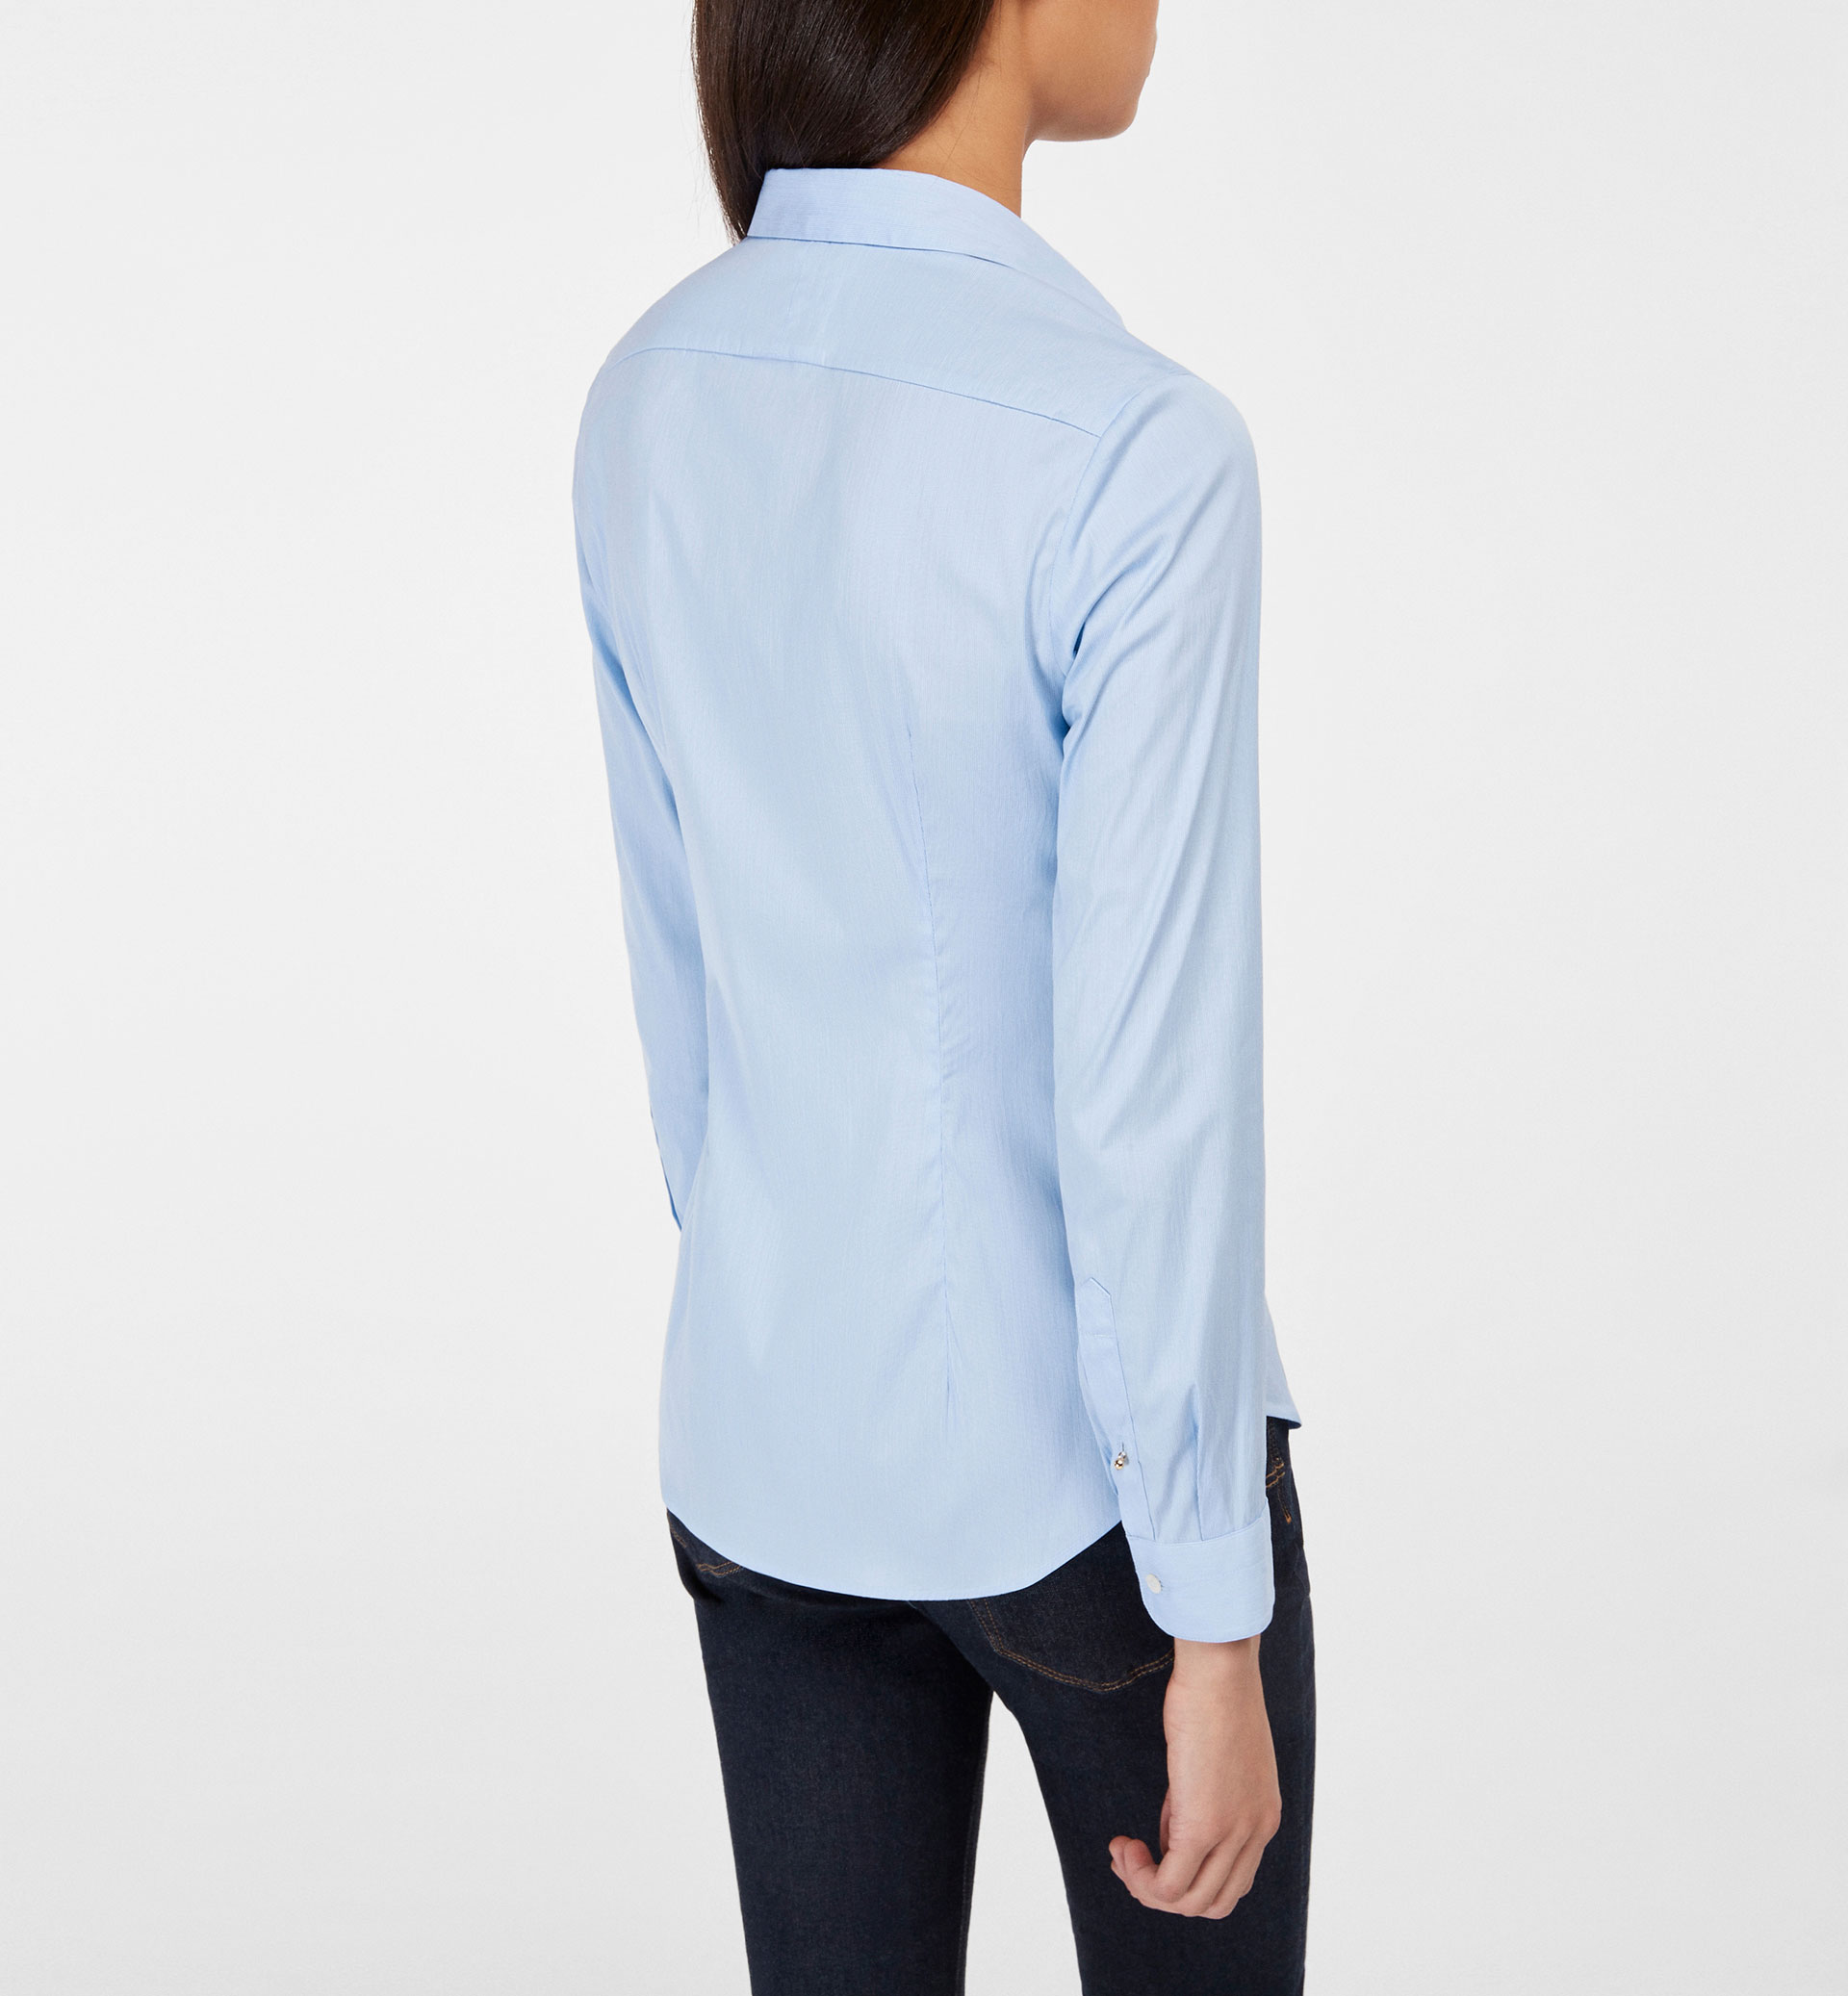 BASIC SHIRT WITH SLEEVES DETAIL